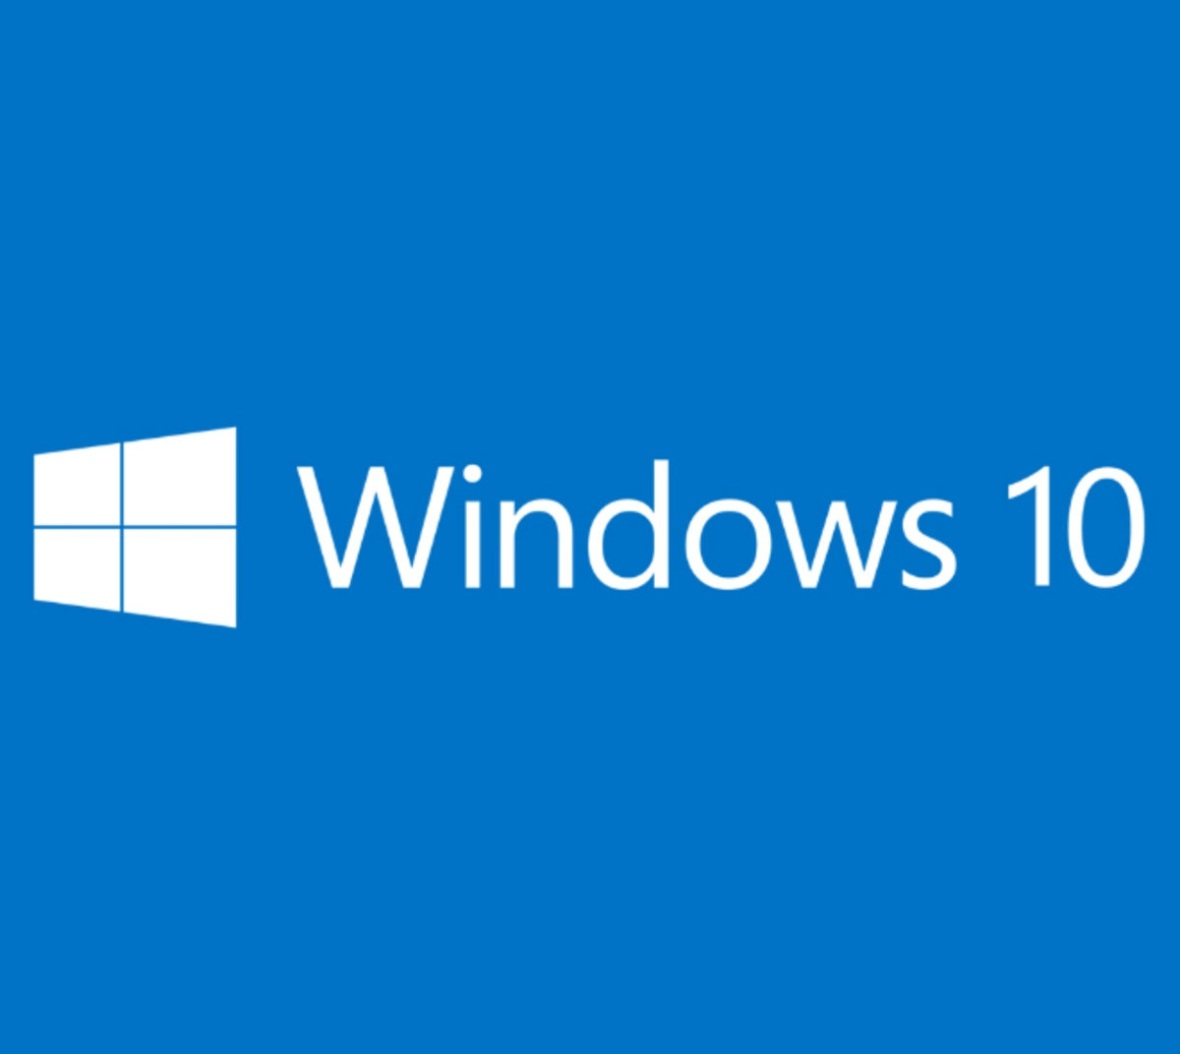 windows_10_logo_full_size_download